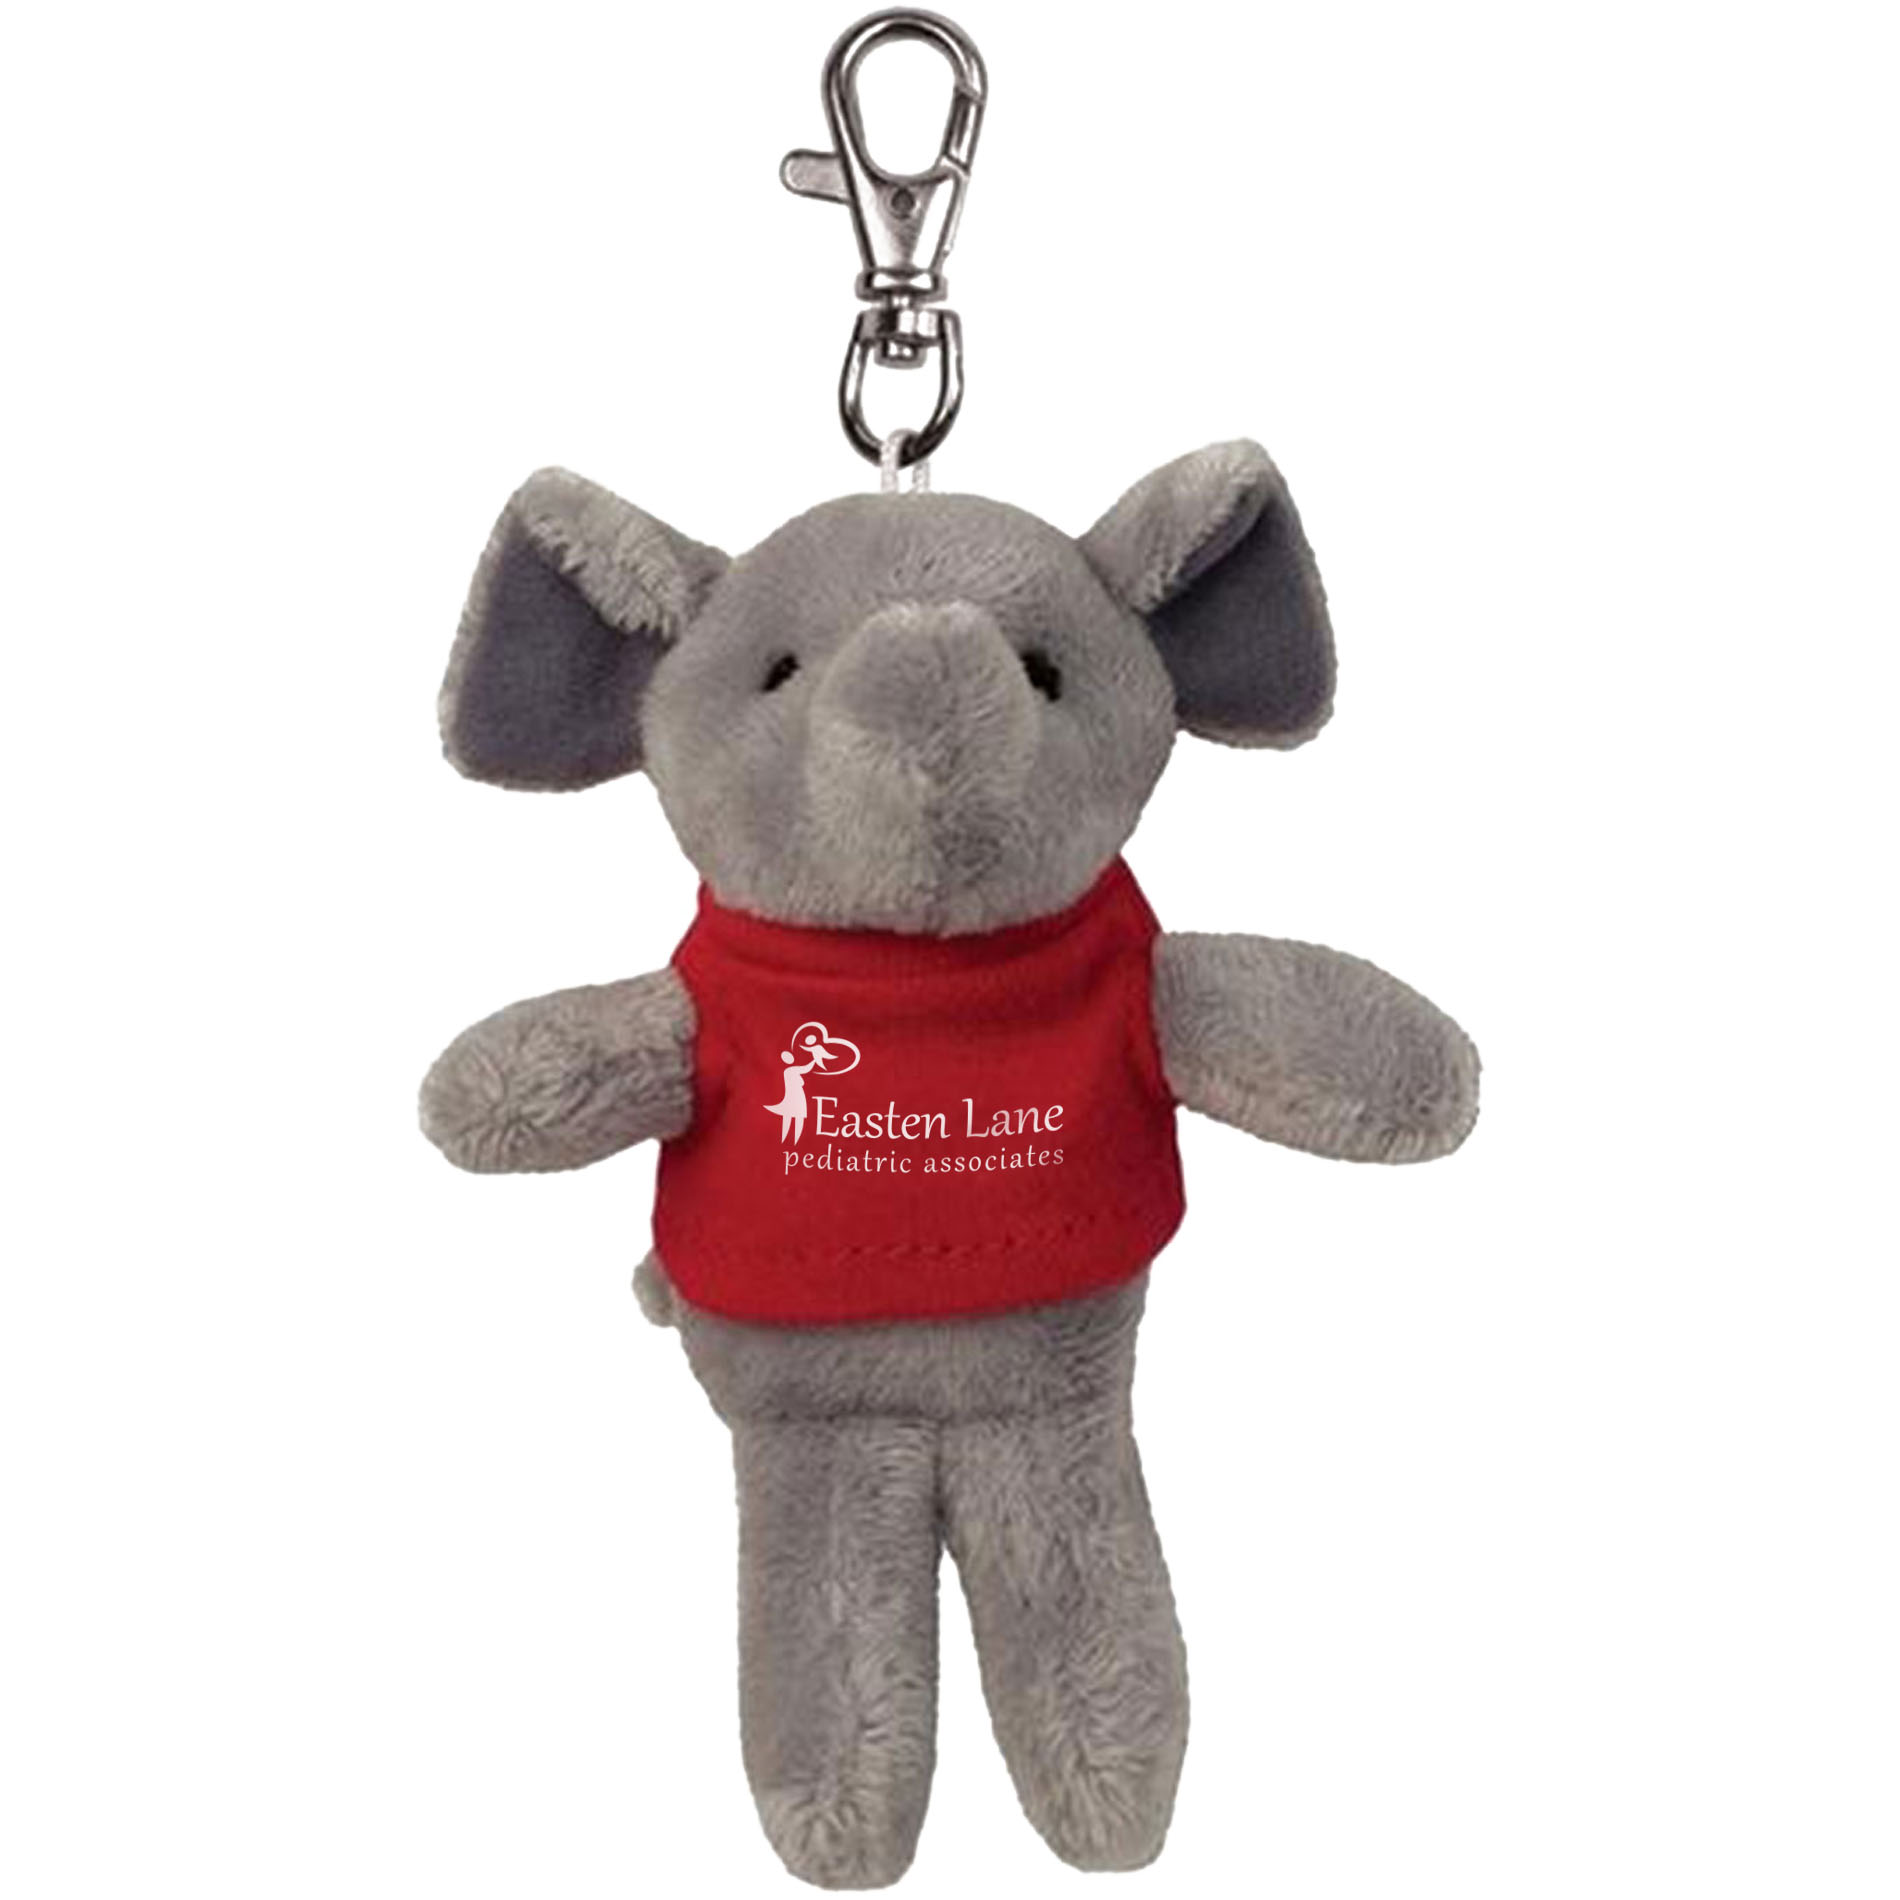 Elephant Wild Bunch Plush Key Tag